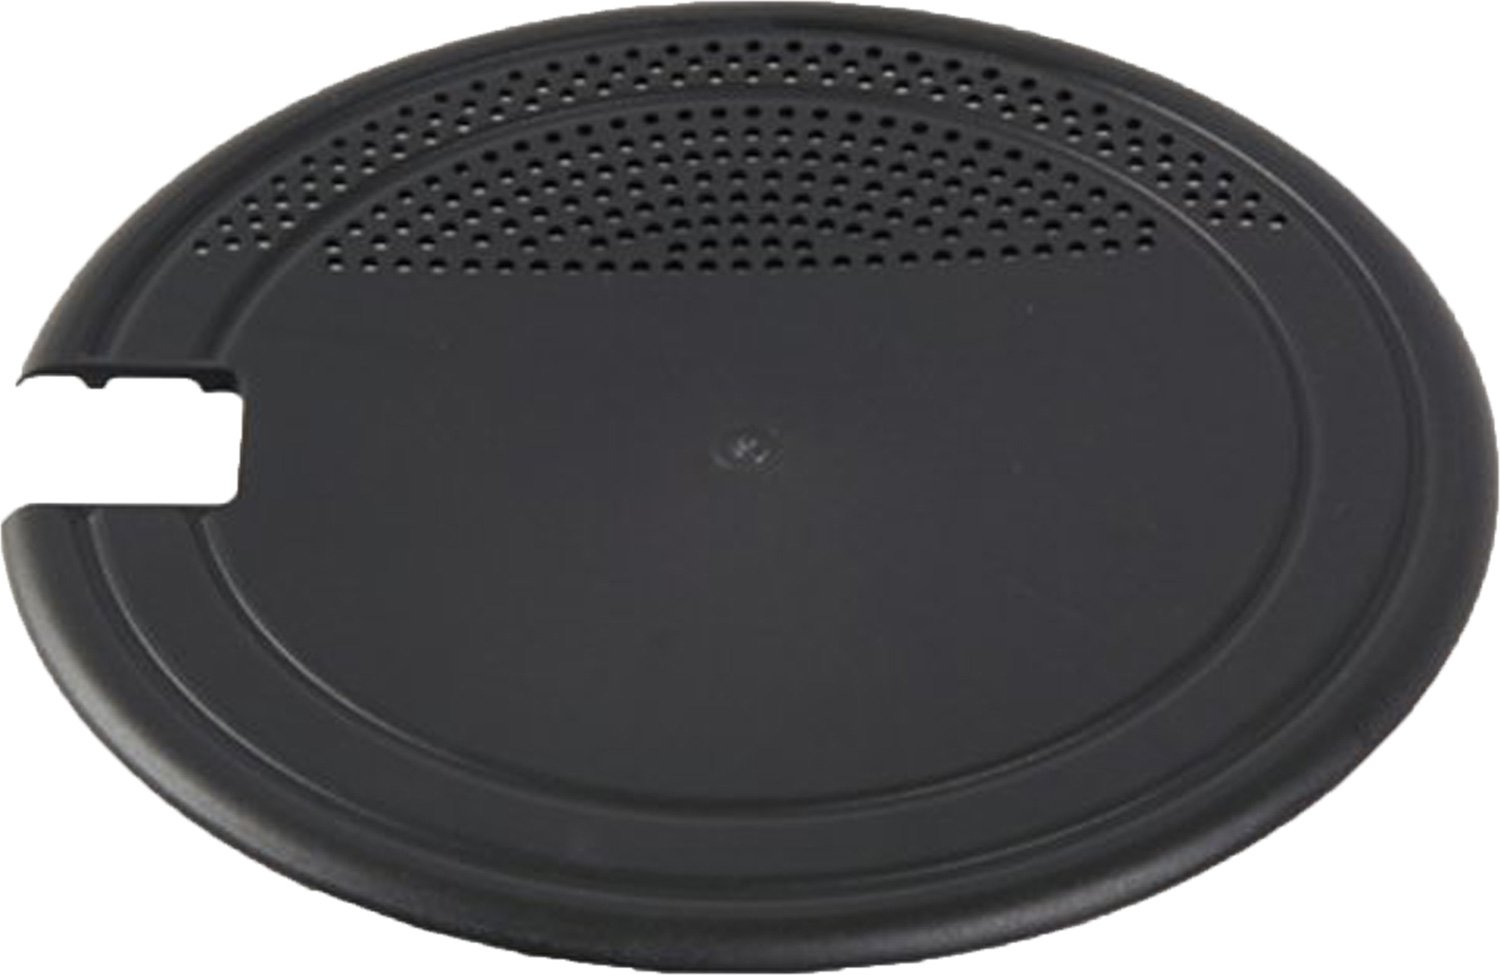 Multi-Disc 27 7 Inch Lid Used as Strainer or Cutting Board Trangia